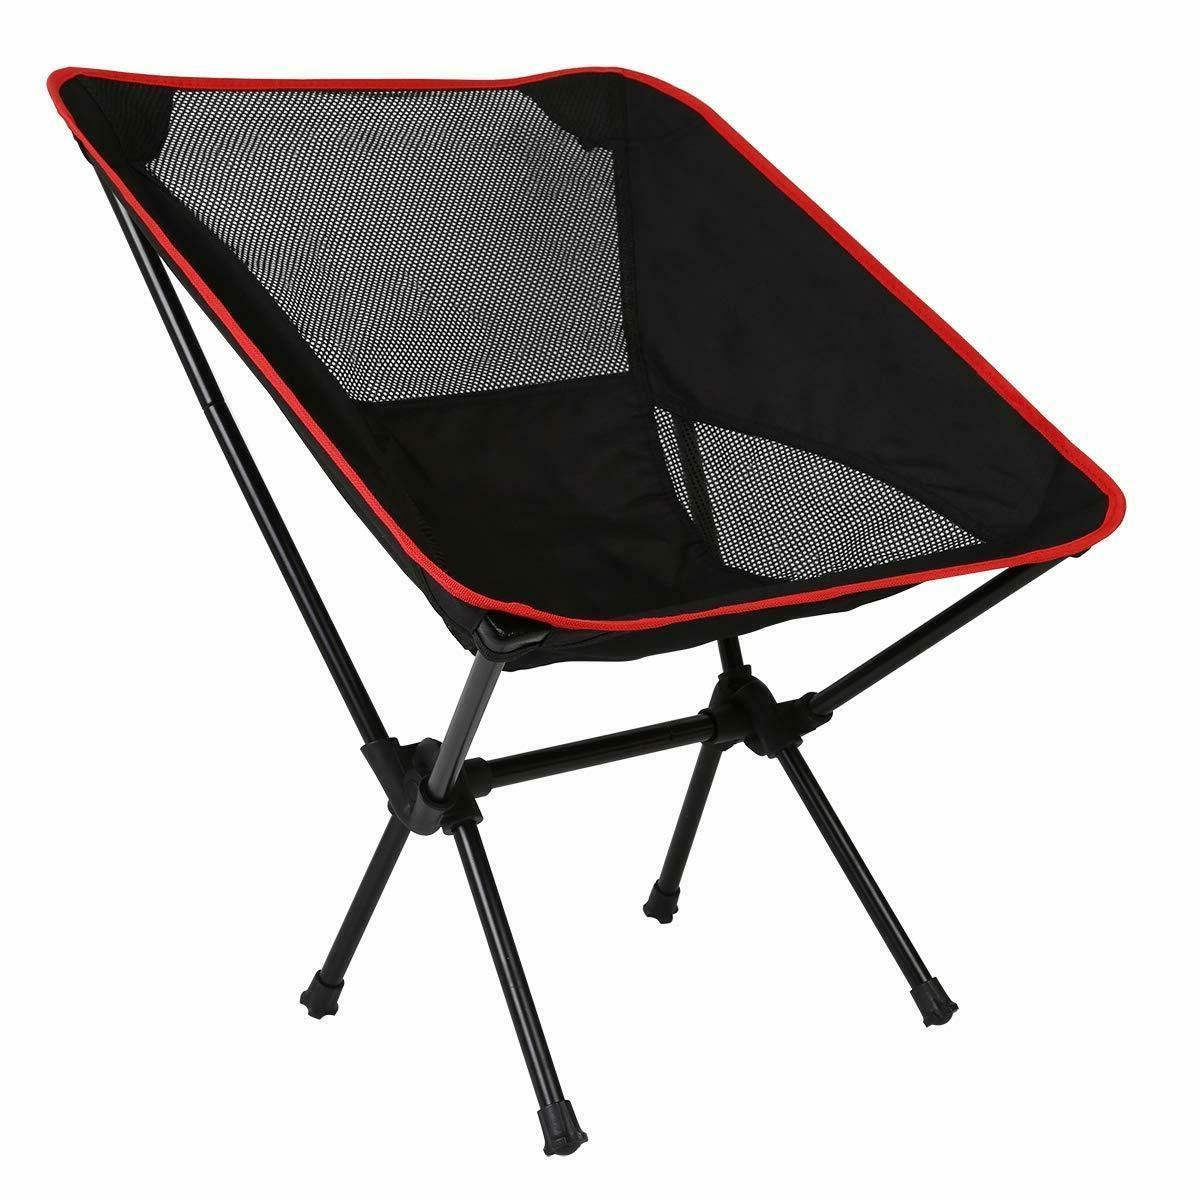 Ultralight Folding Backpack Camping Chair, Compact